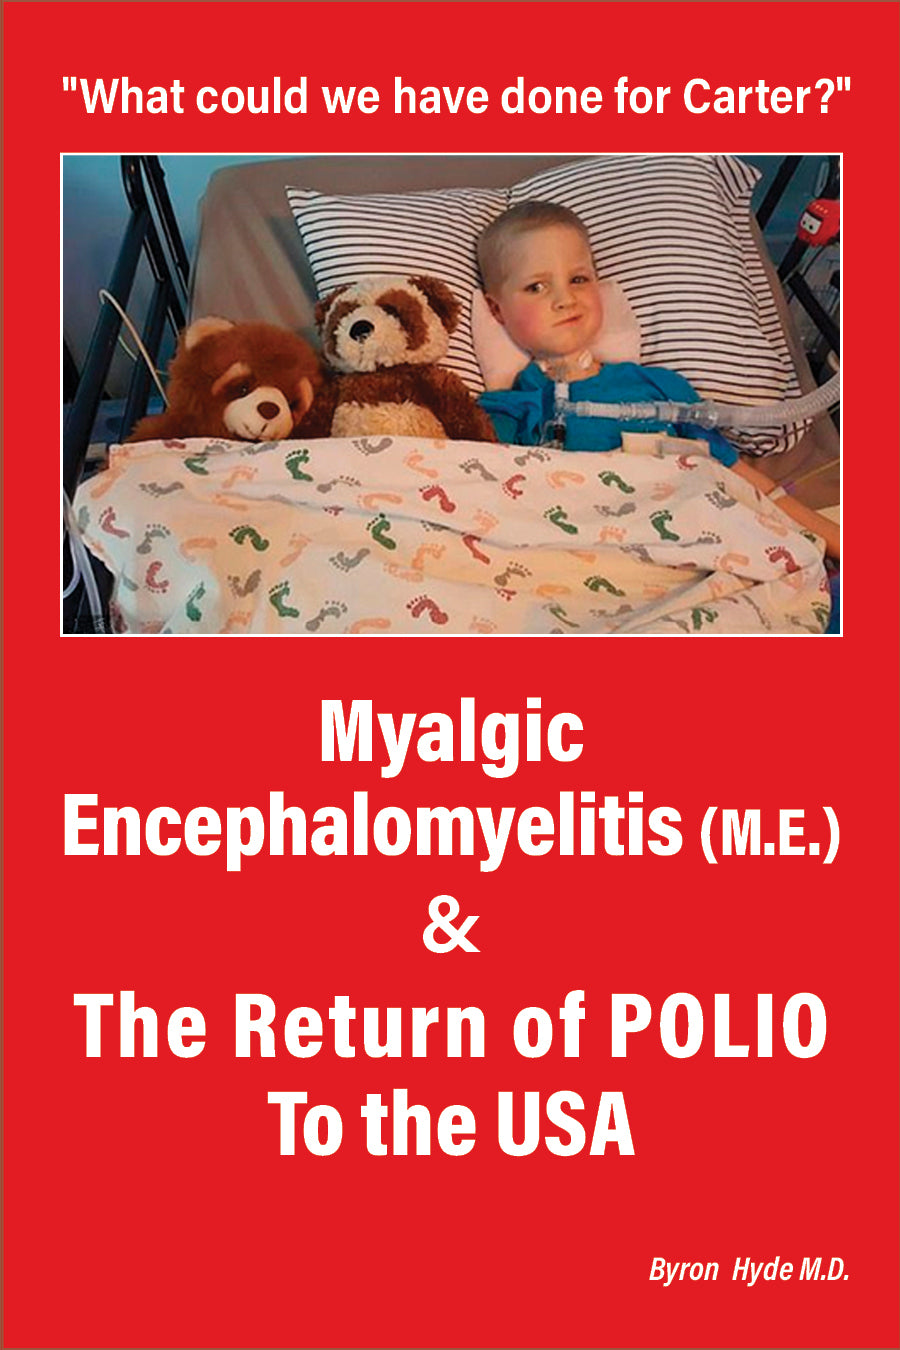 Myalgic Encephalomyelitis (M.E.) & The Return of Polio to the USA